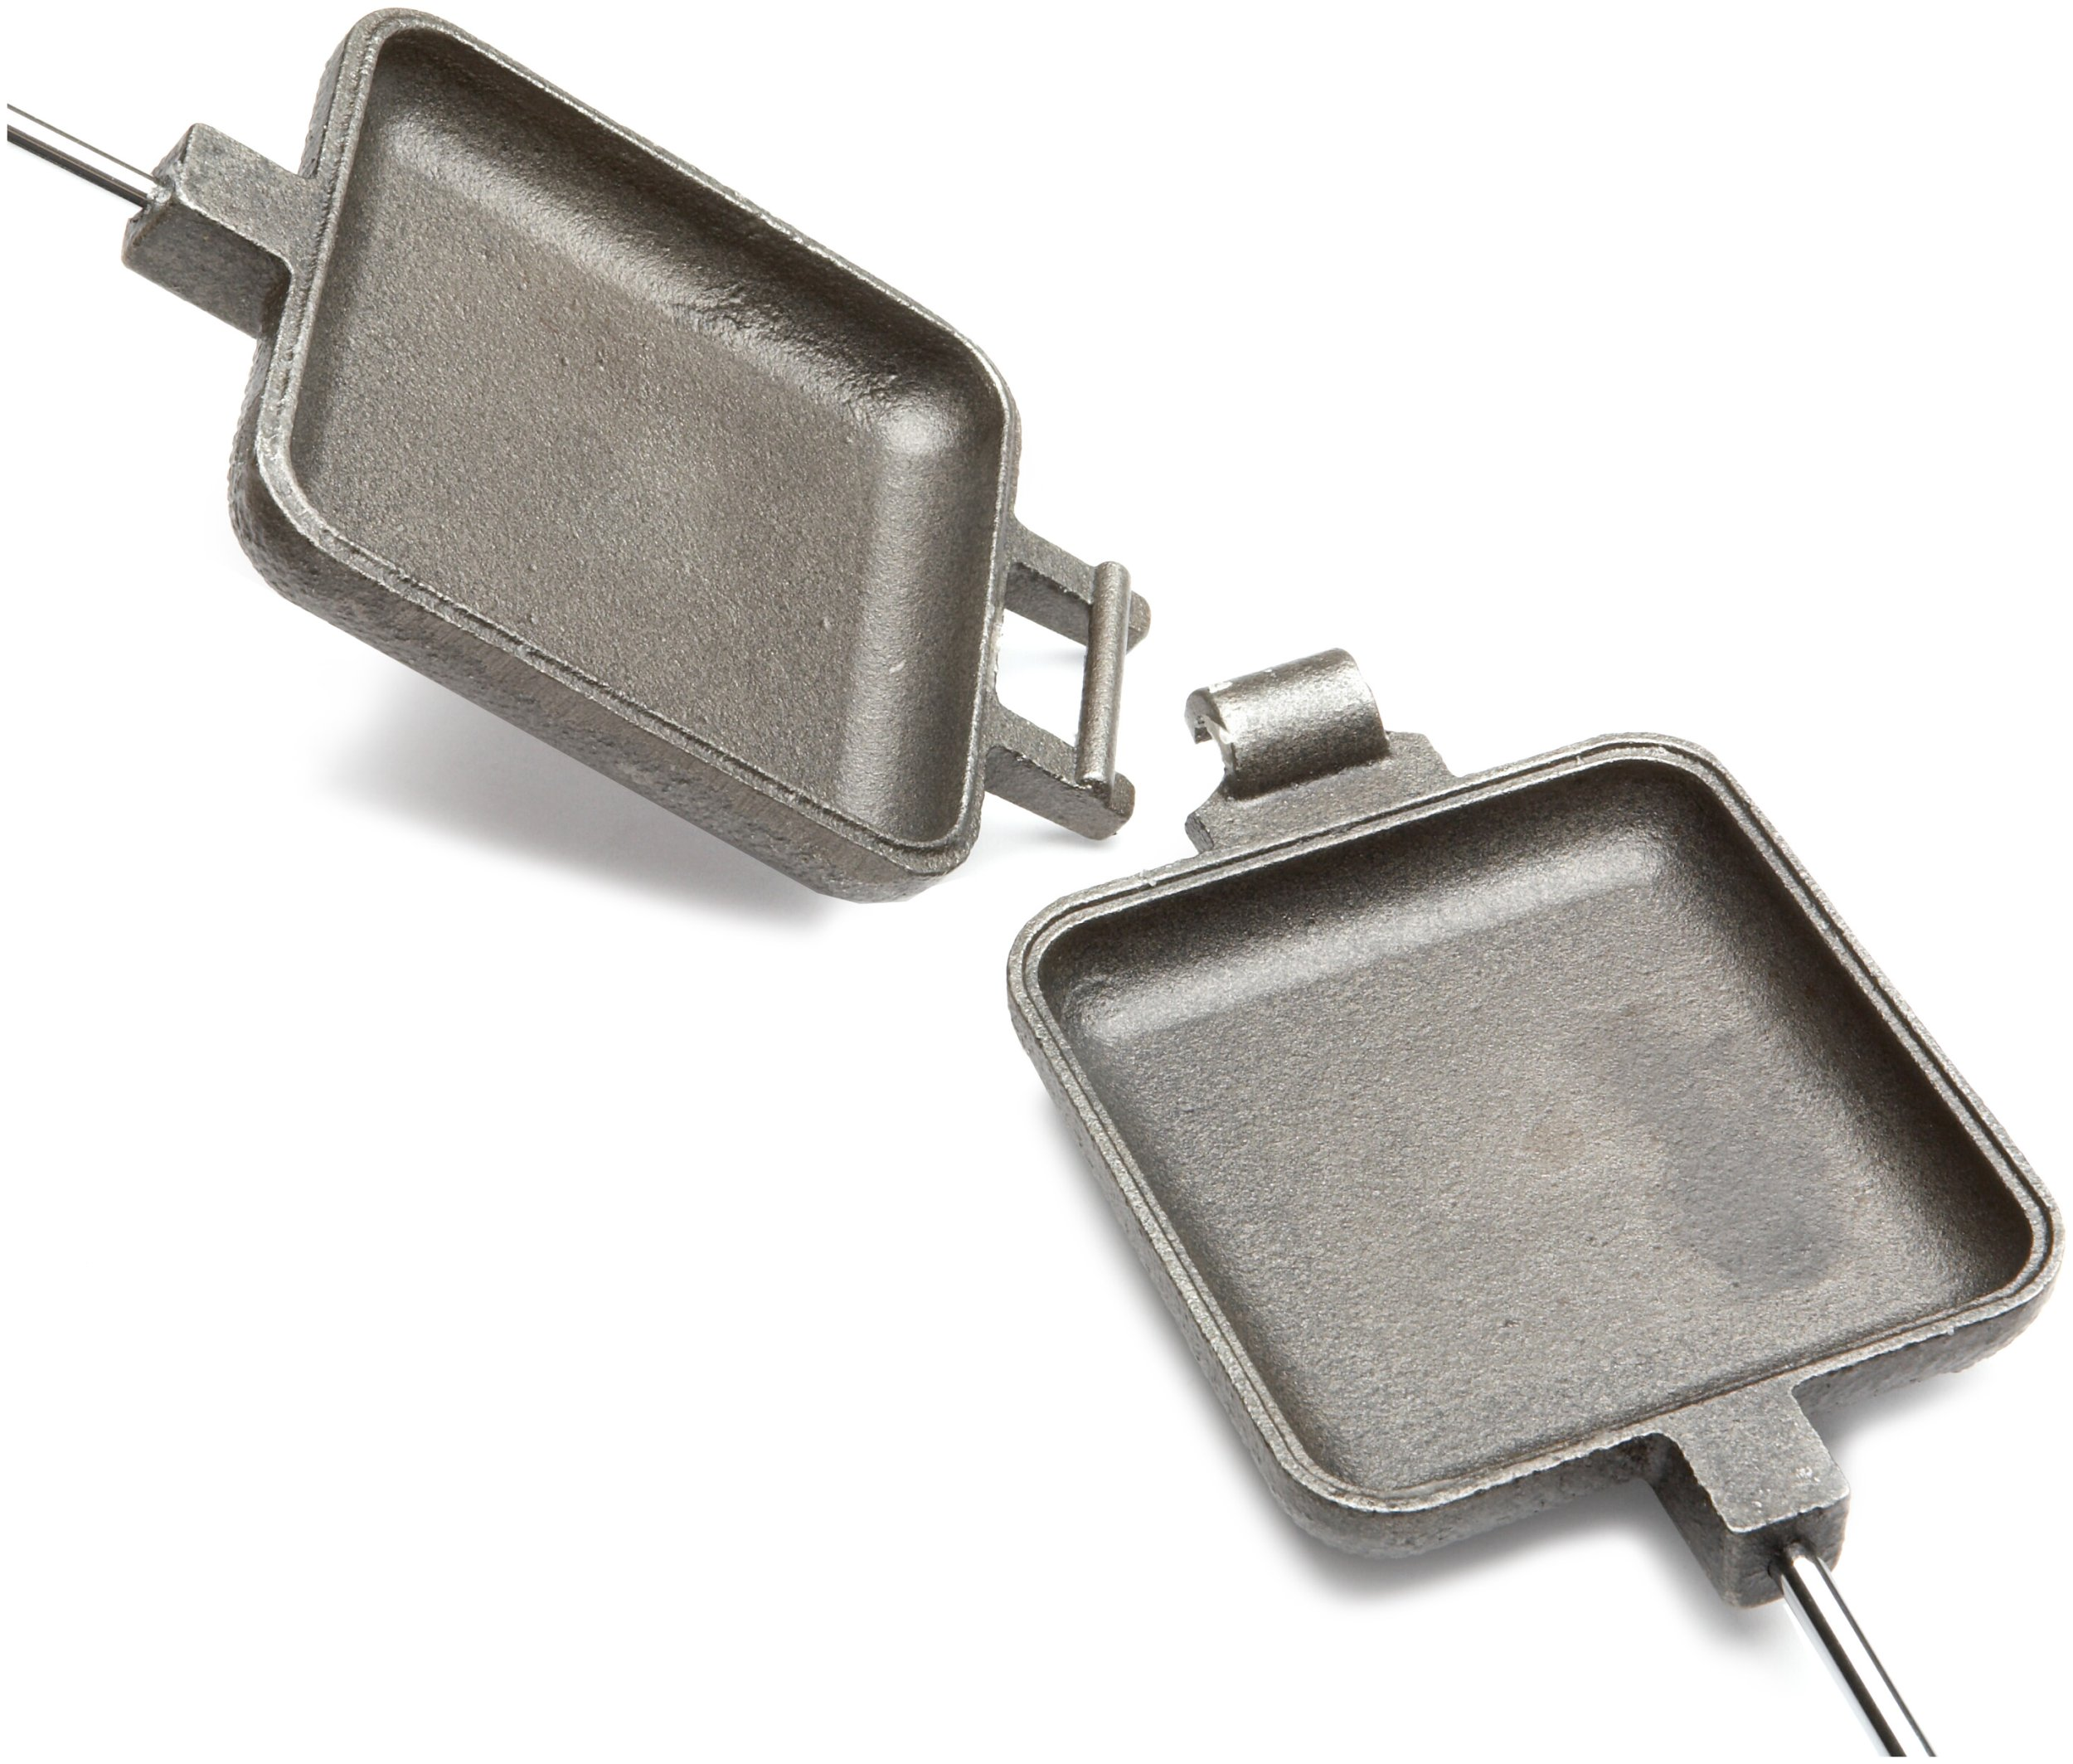 Rome Industries 1705 Pie Iron Sandwich Cooker by Rome Industries (Image #1)